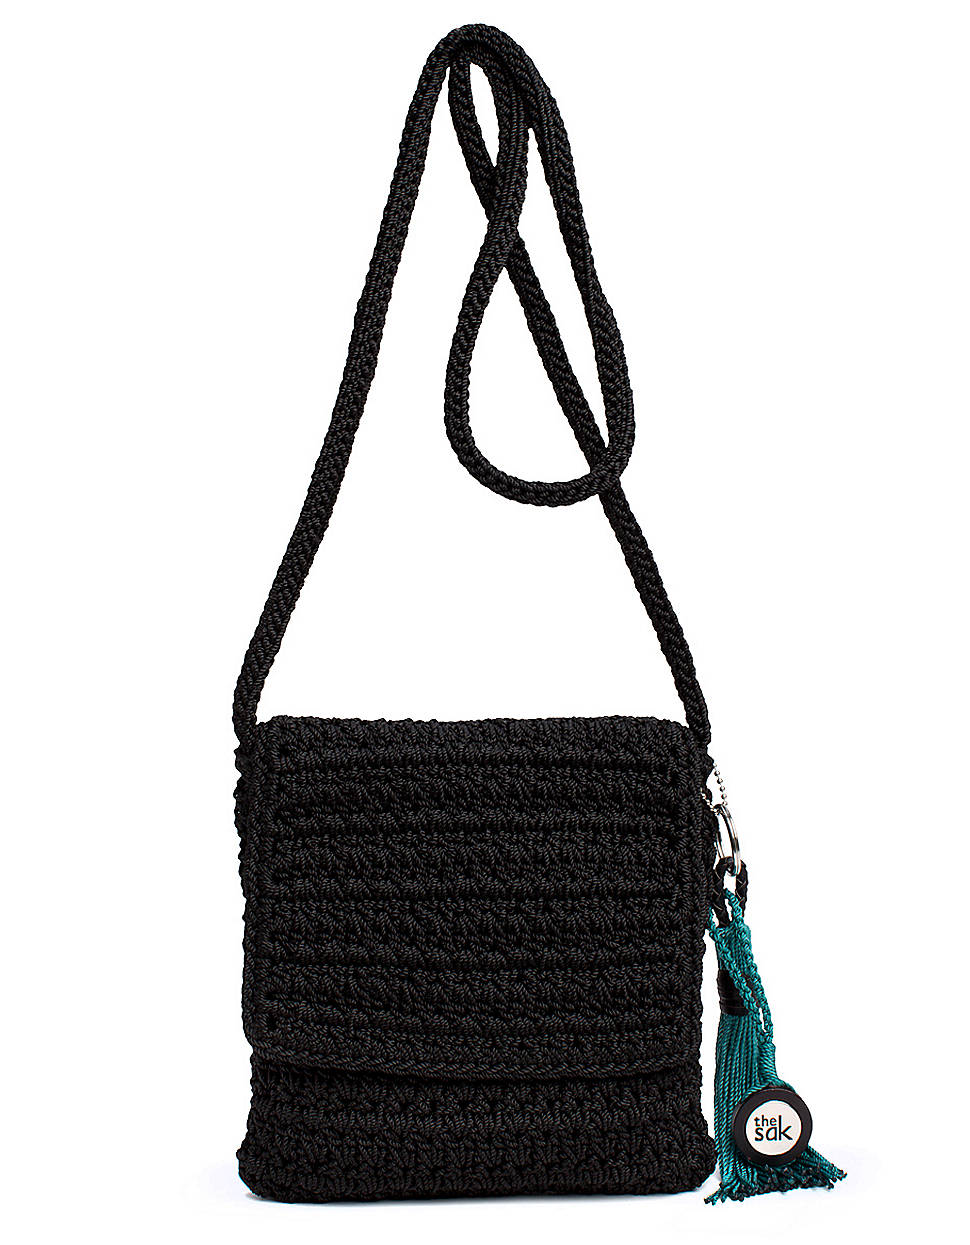 The Sak Casual Classics Crochet Flap Shoulder Bag in Black Lyst